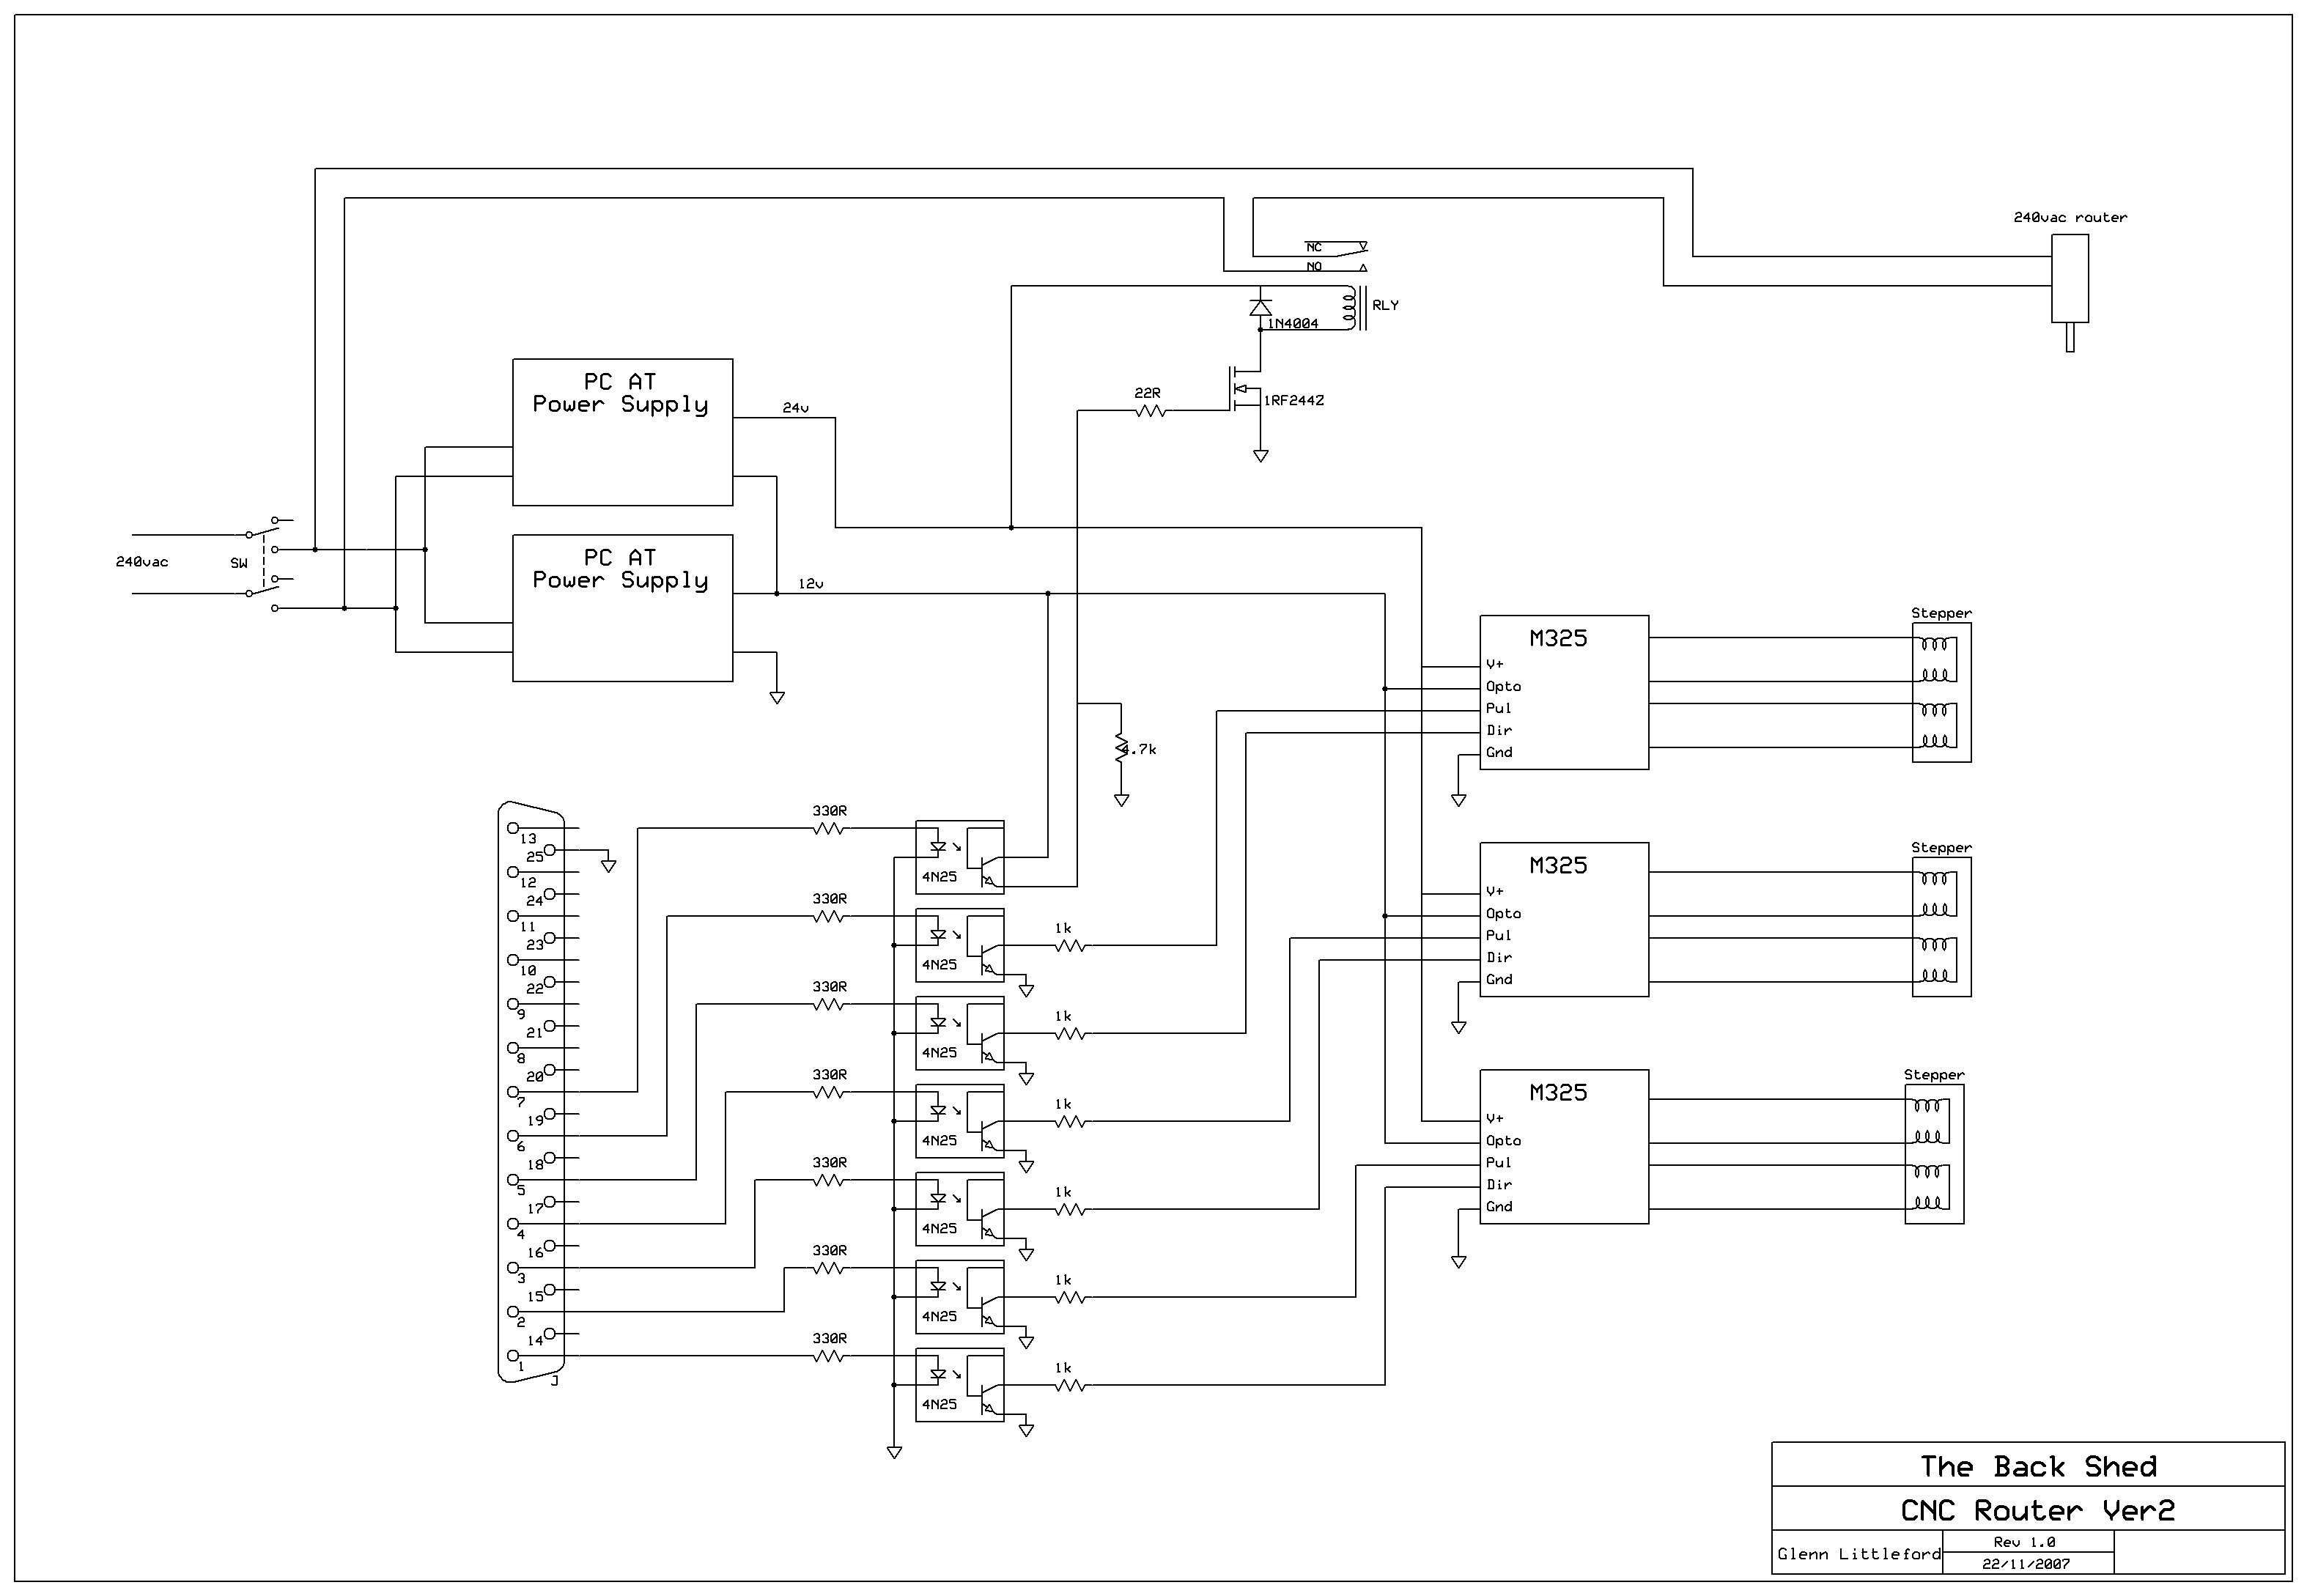 How to draw wiring diagram elegant wiring diagram image how to draw a circuit diagram beautiful ponent series circuit diagrams for the od lab resistor asfbconference2016 Choice Image